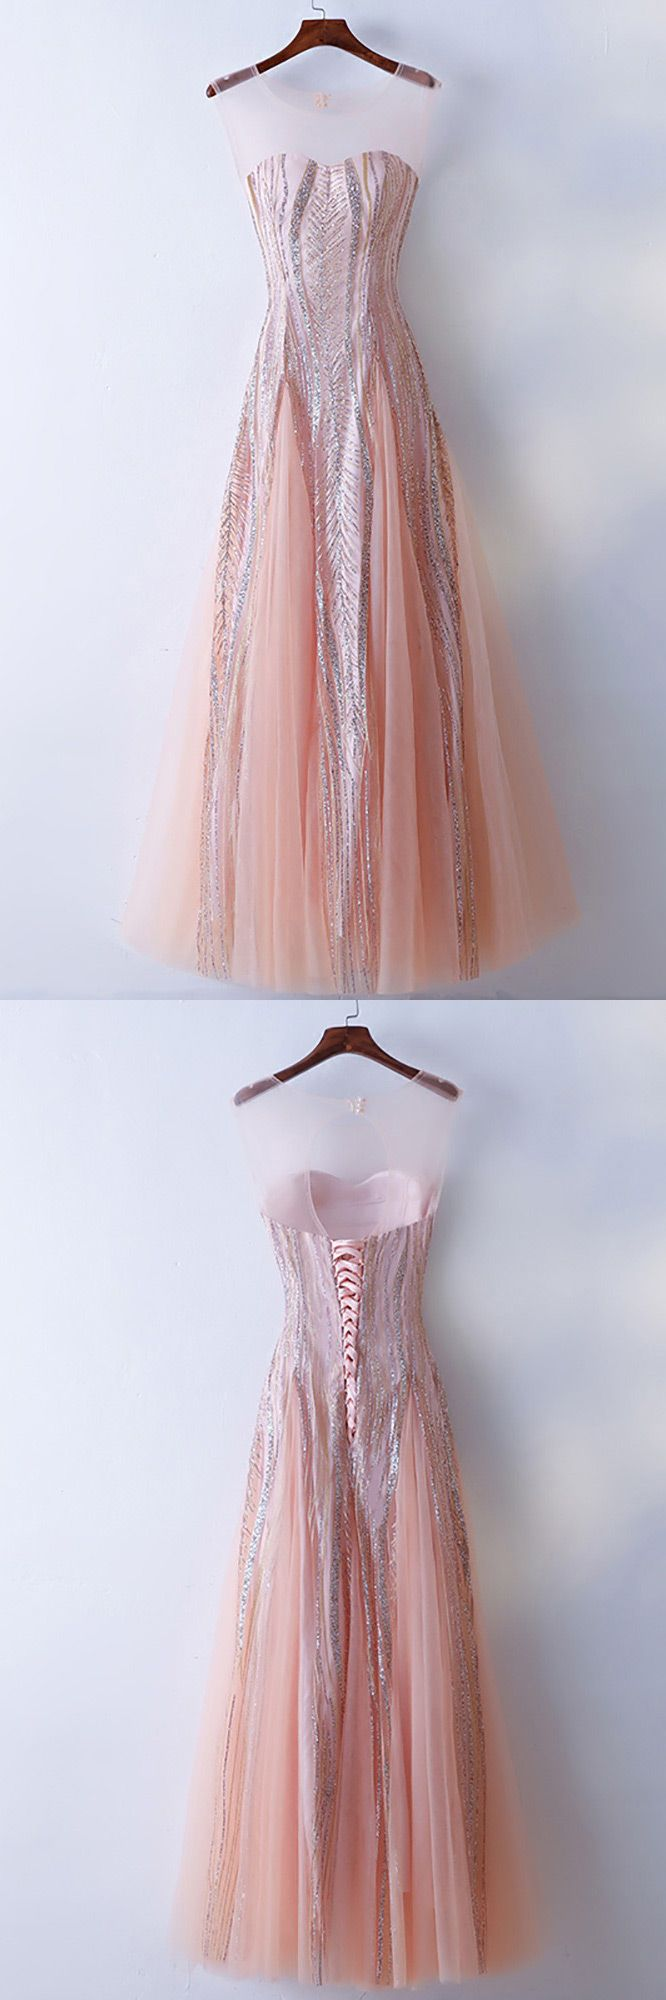 Only $118, Unique Illusion Neckline Sparkly Pink Prom Dress Long Tulle #MYX18006 at #SheProm. SheProm is an online store with thousands of dresses, range from Prom,Homecoming,Party,Pink,A Line Dresses,Long Dresses,Customizable Dresses and so on. Not only selling formal dresses, more and more trendy dress styles will be updated daily to our store. With low price and high quality guaranteed, you will definitely like shopping from us. Shop now to get $10 off!